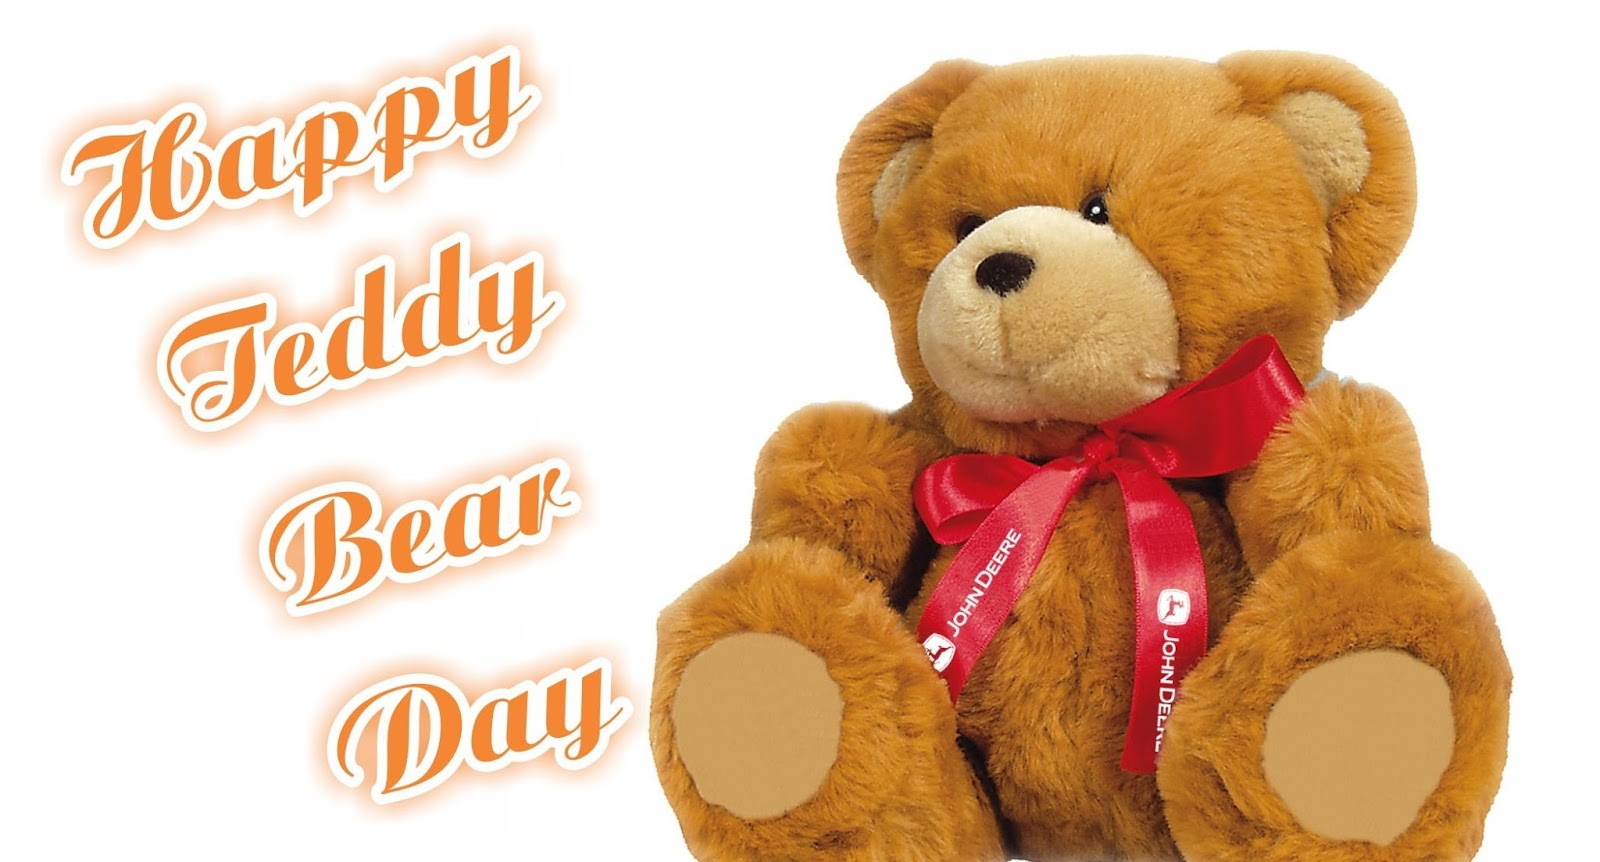 10 february 2018 teddy day history 2018 wishes pics images 10 february 2018 teddy day history 2018 wishes pics images messages sms hd wallpapers 365 festivals everyday is a festival altavistaventures Images